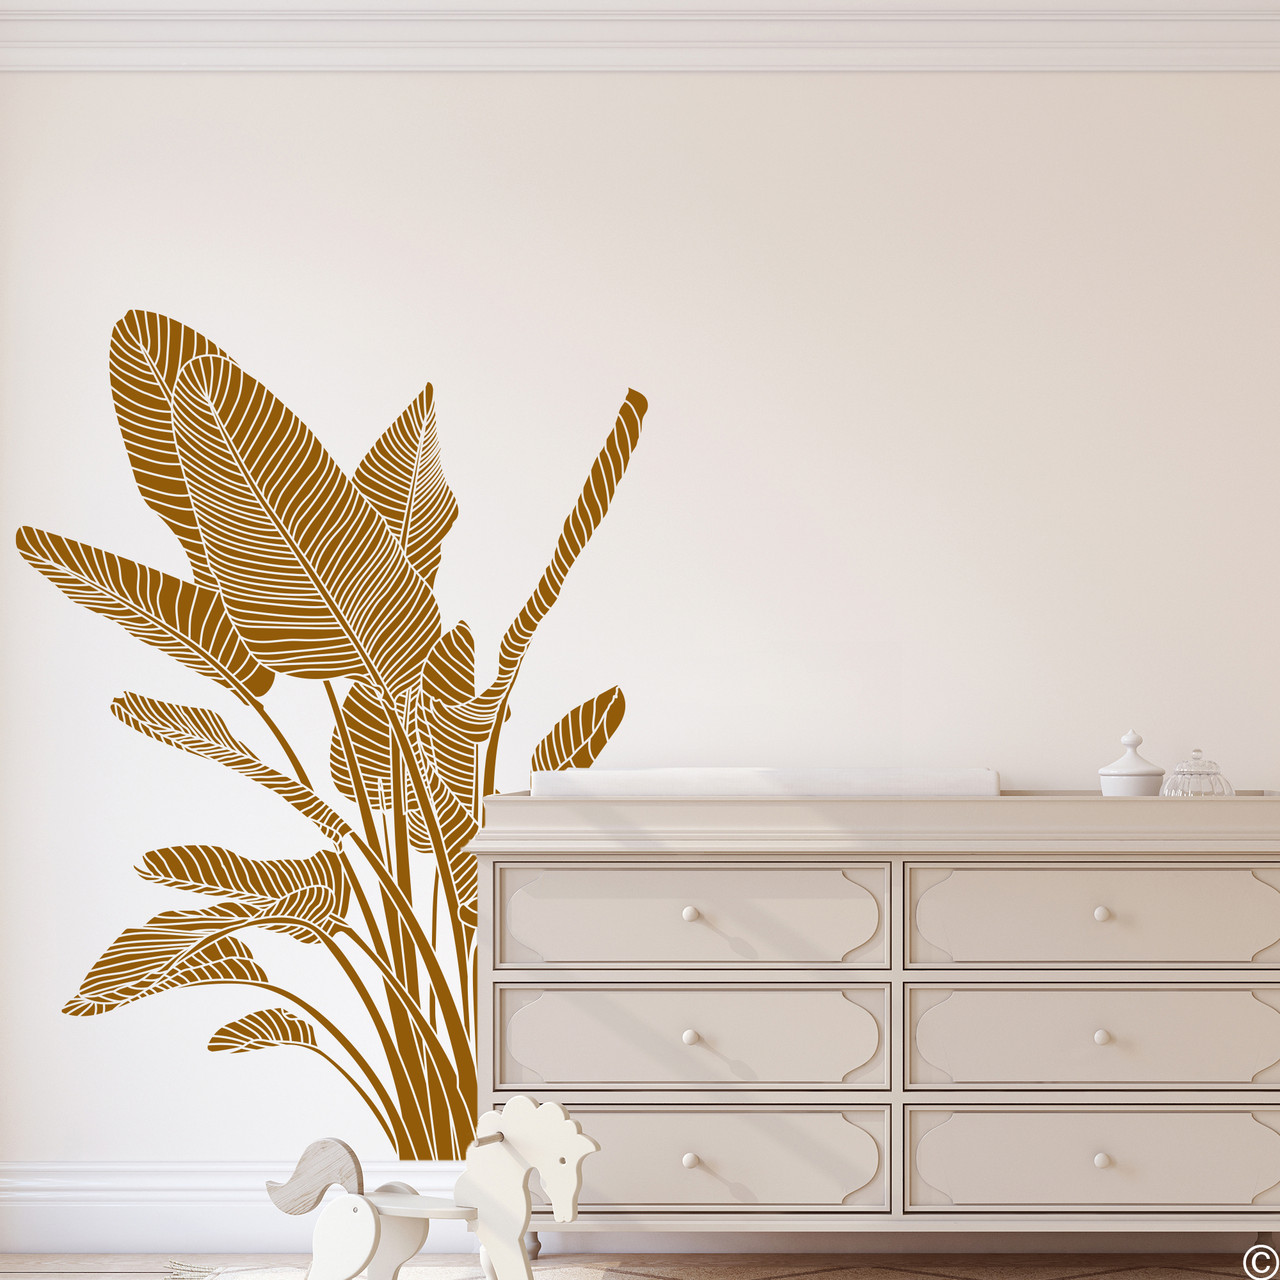 The Bird of Paradise wall decal art shown here in clay brown vinyl color.